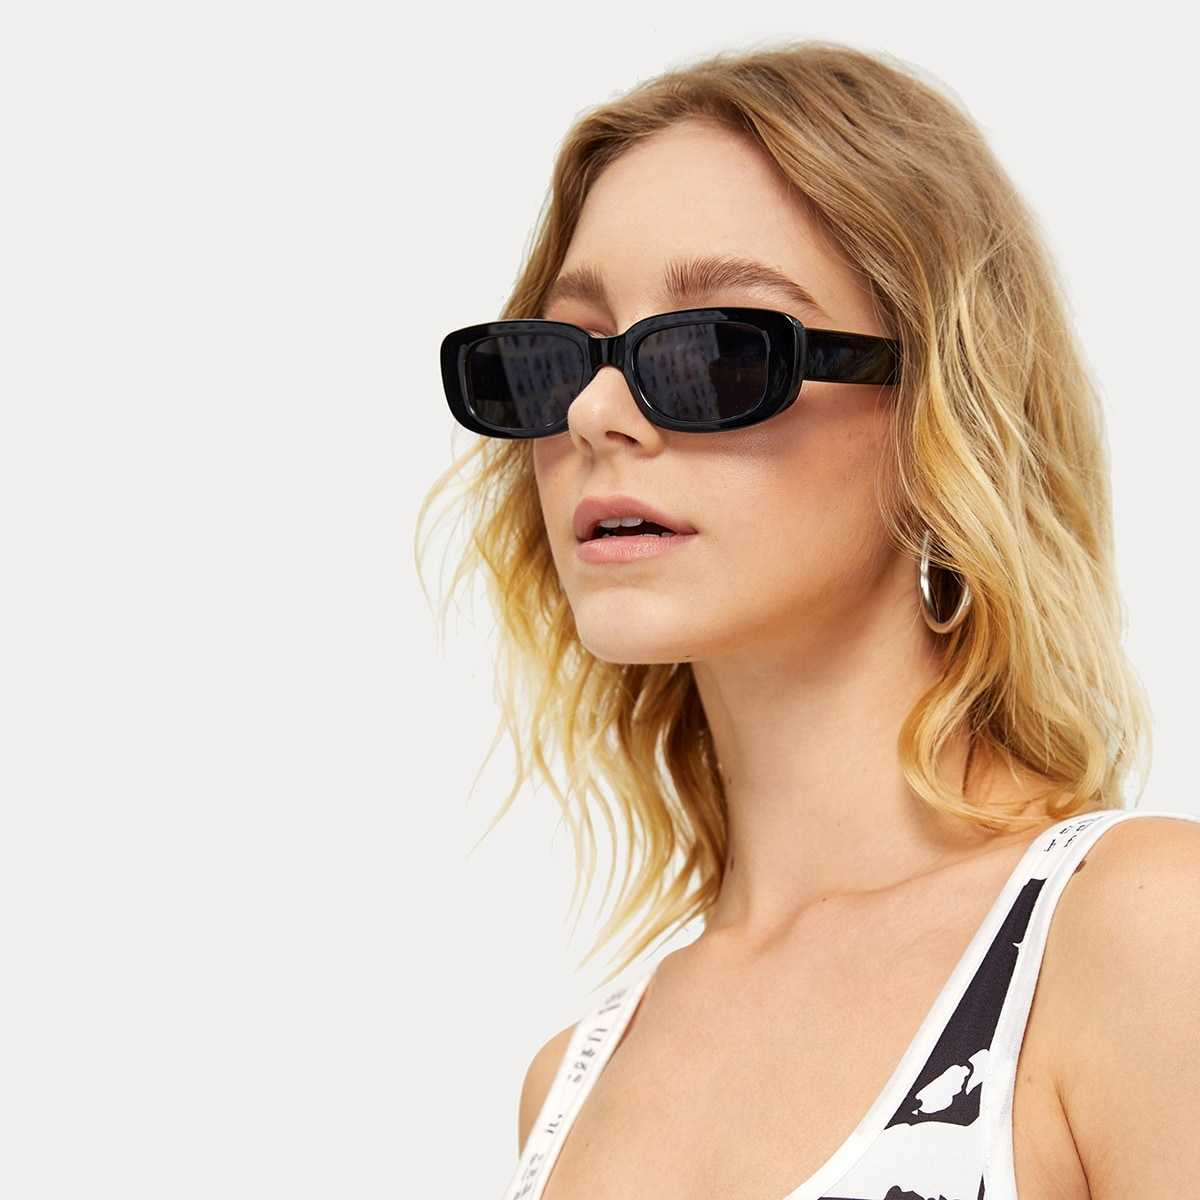 Chunky Frame Sunglasses in Black by ROMWE on GOOFASH